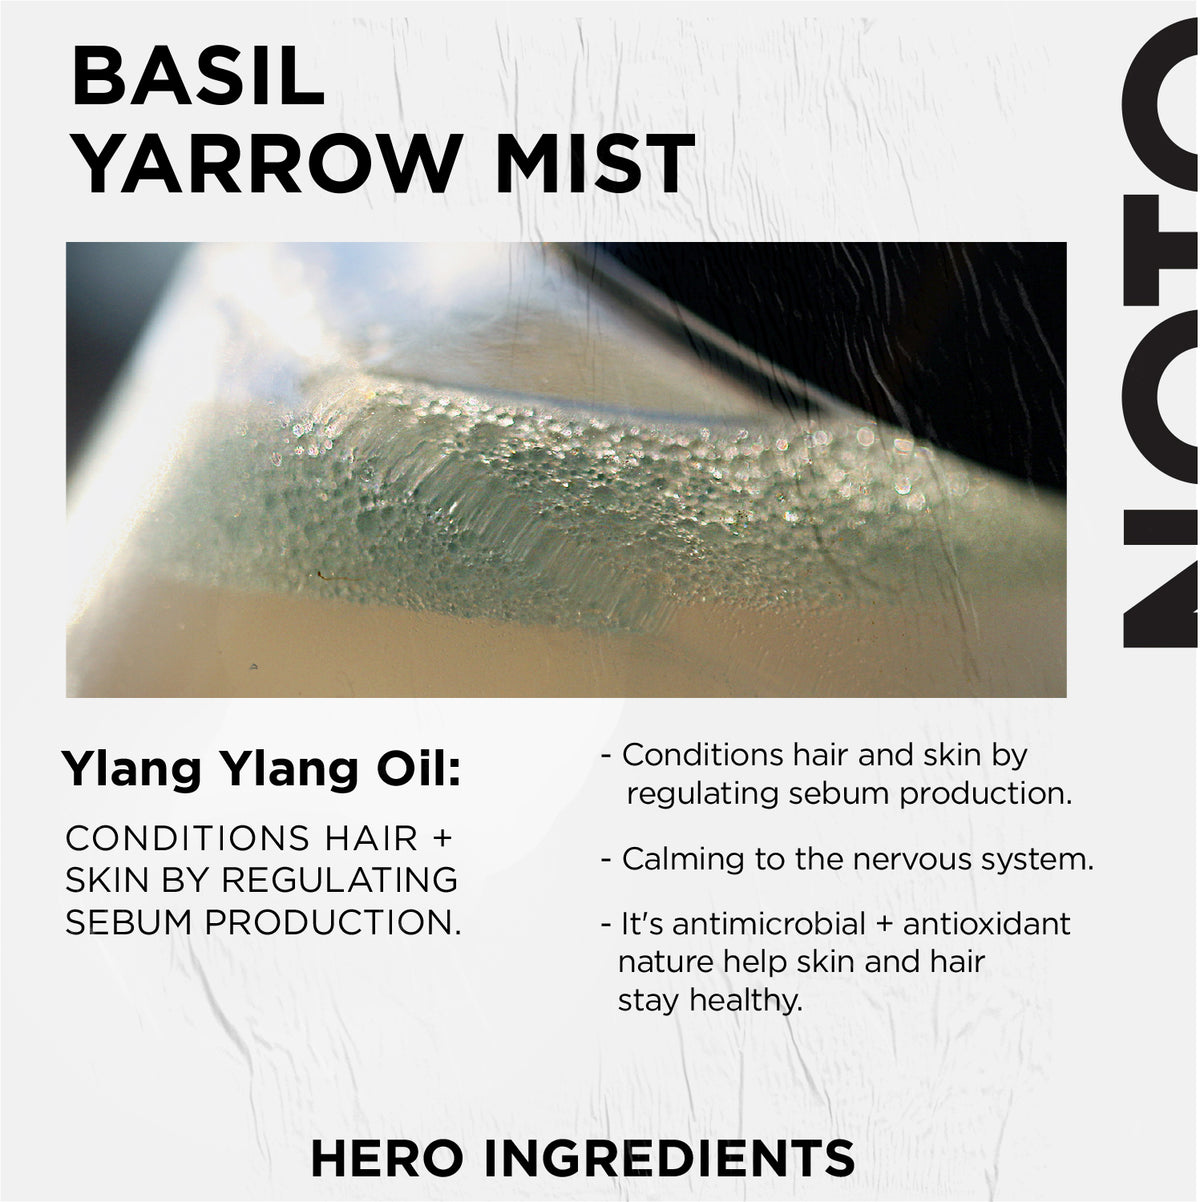 INGREDIENT FOCUS : Basil Yarrow Mist // YLANG YLANG